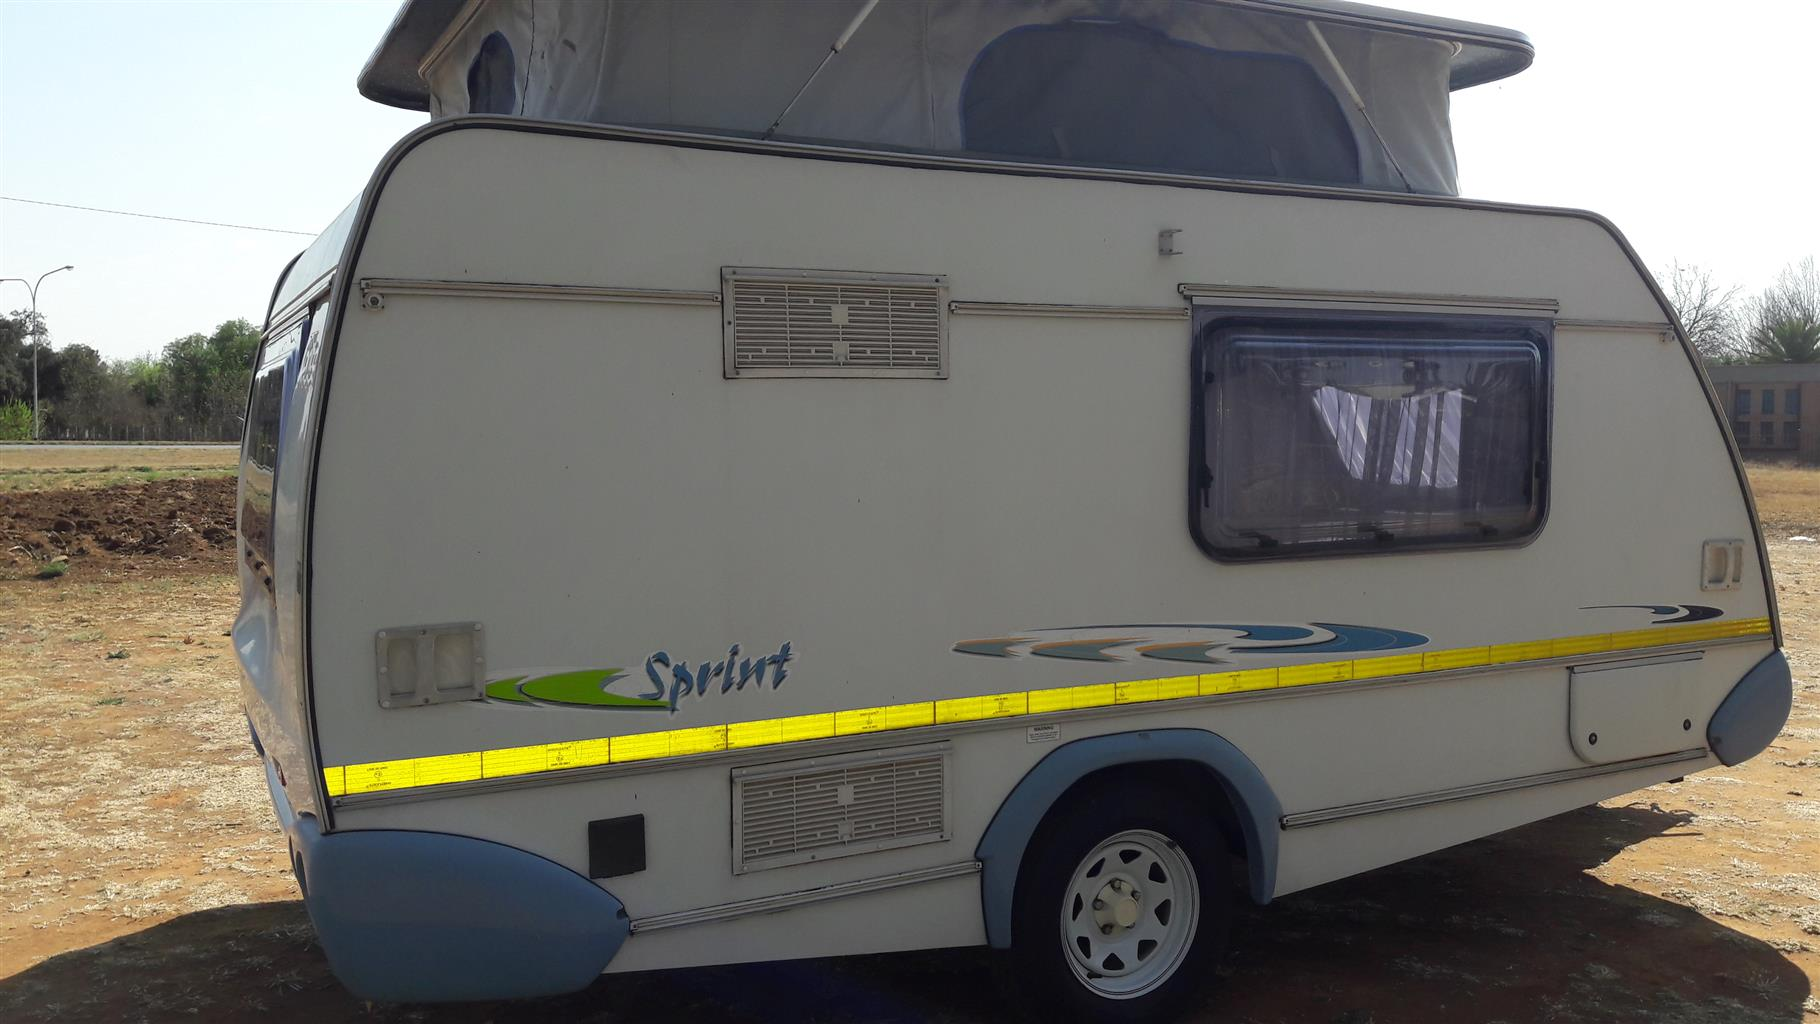 sprite sprint 2009 model with full tent and rally tent in excellent condition must be seen